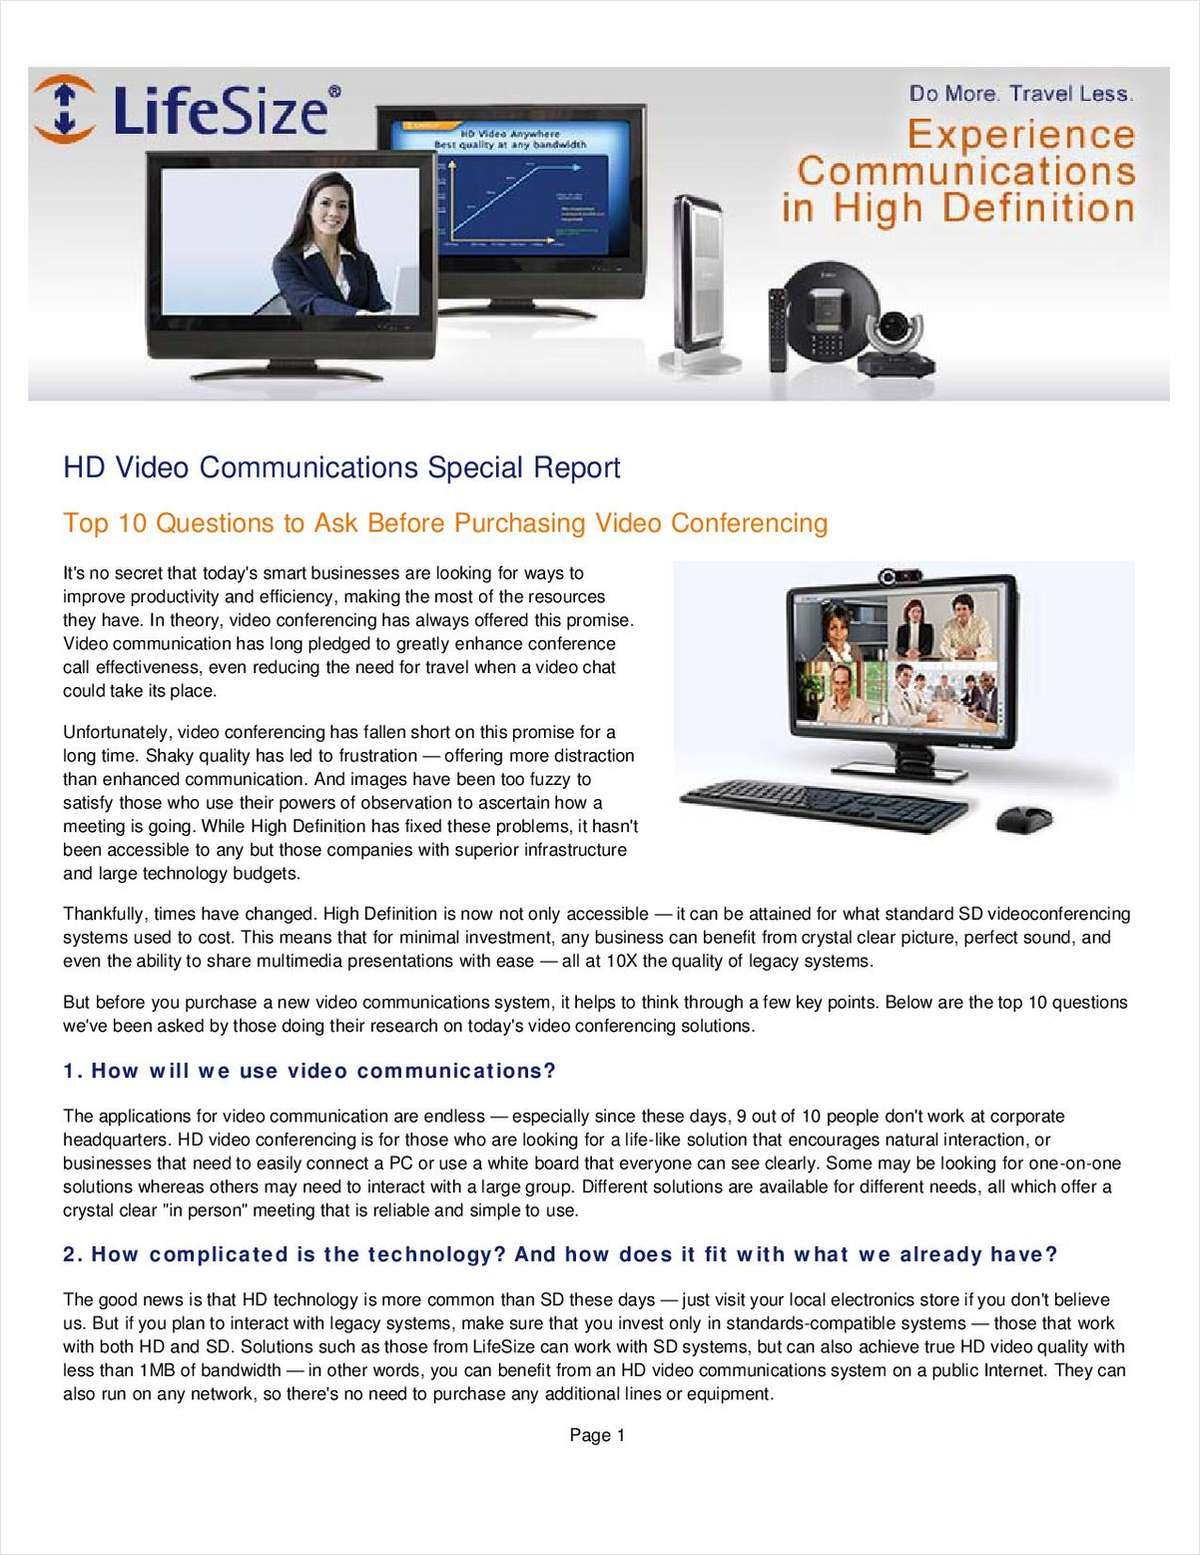 Top 10 Questions to Ask Before Purchasing Video Conferencing